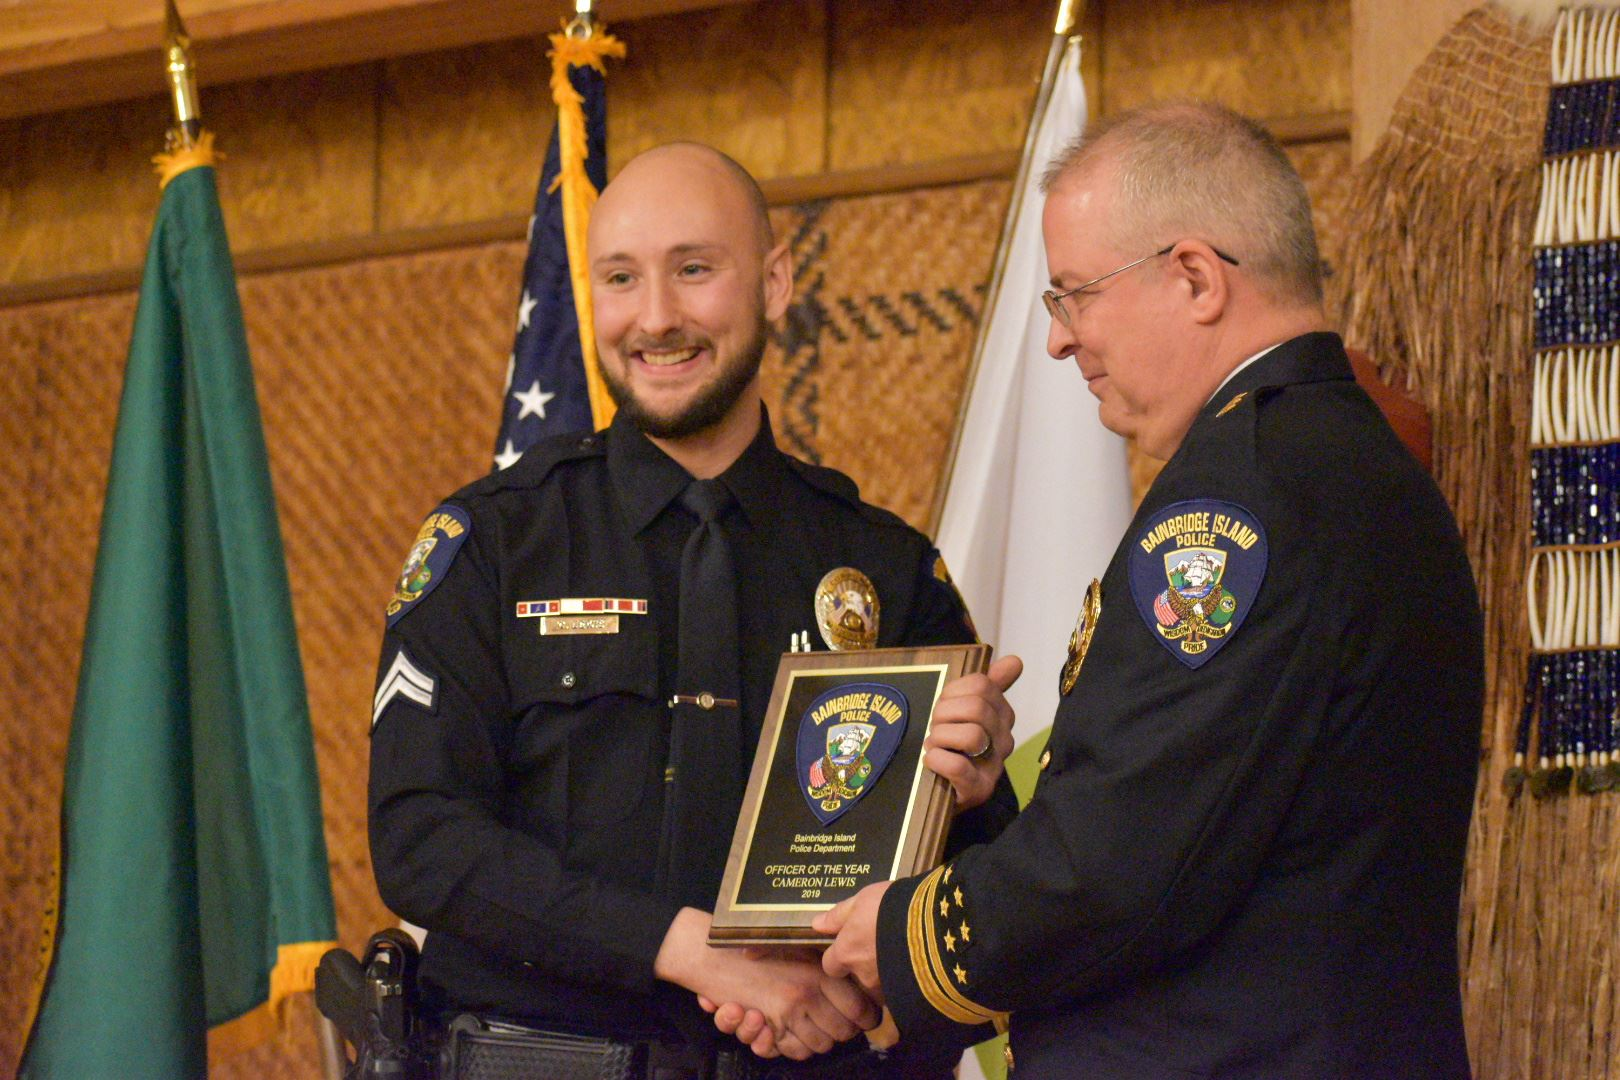 Corporal Cameron Lewis, Officer of the Year 2019